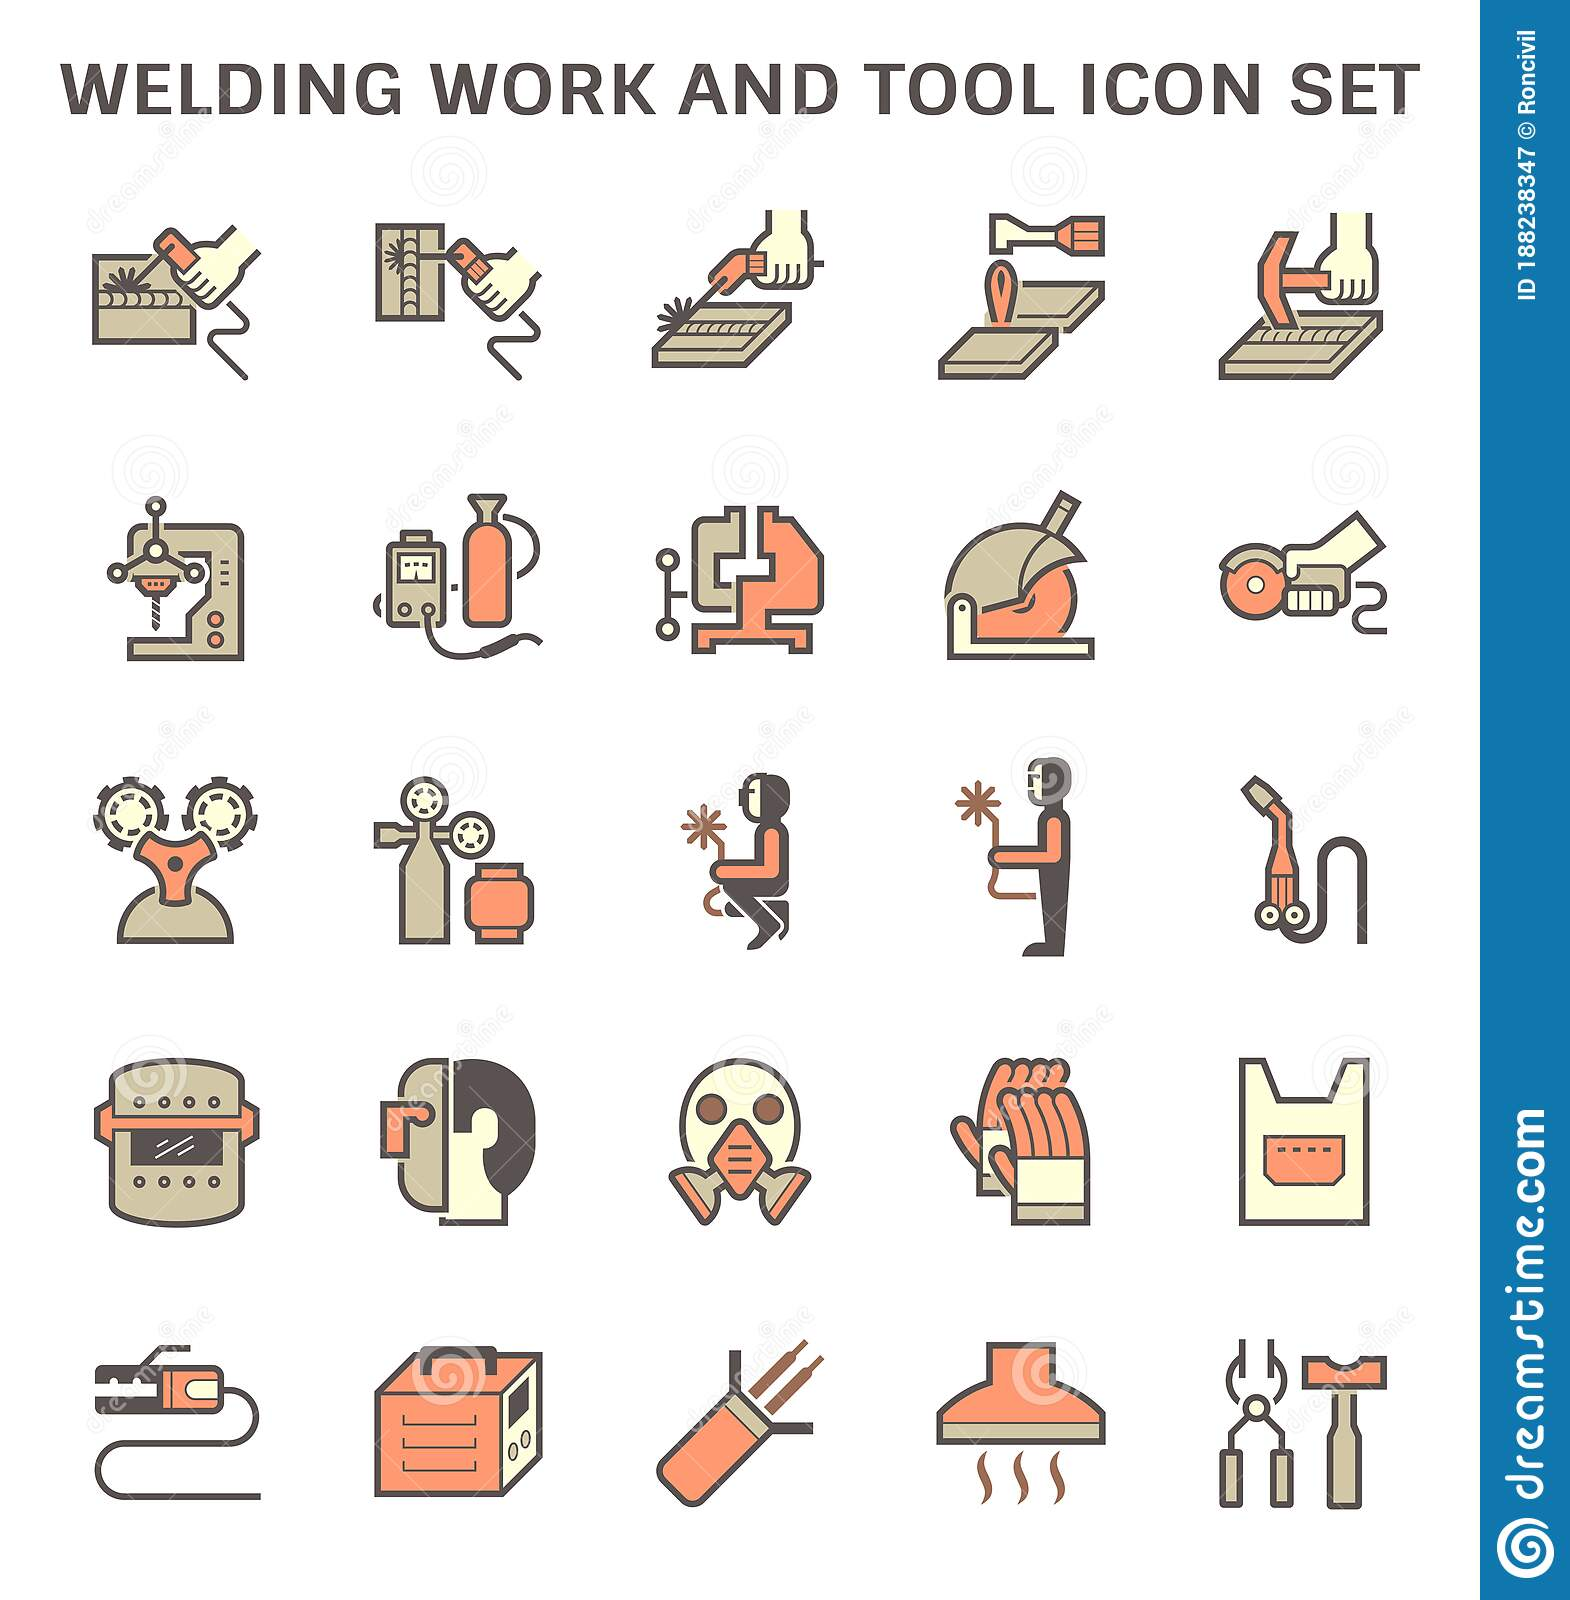 Welding Work And Tool Icon Stock Vector Illustration Of Hood 188238347